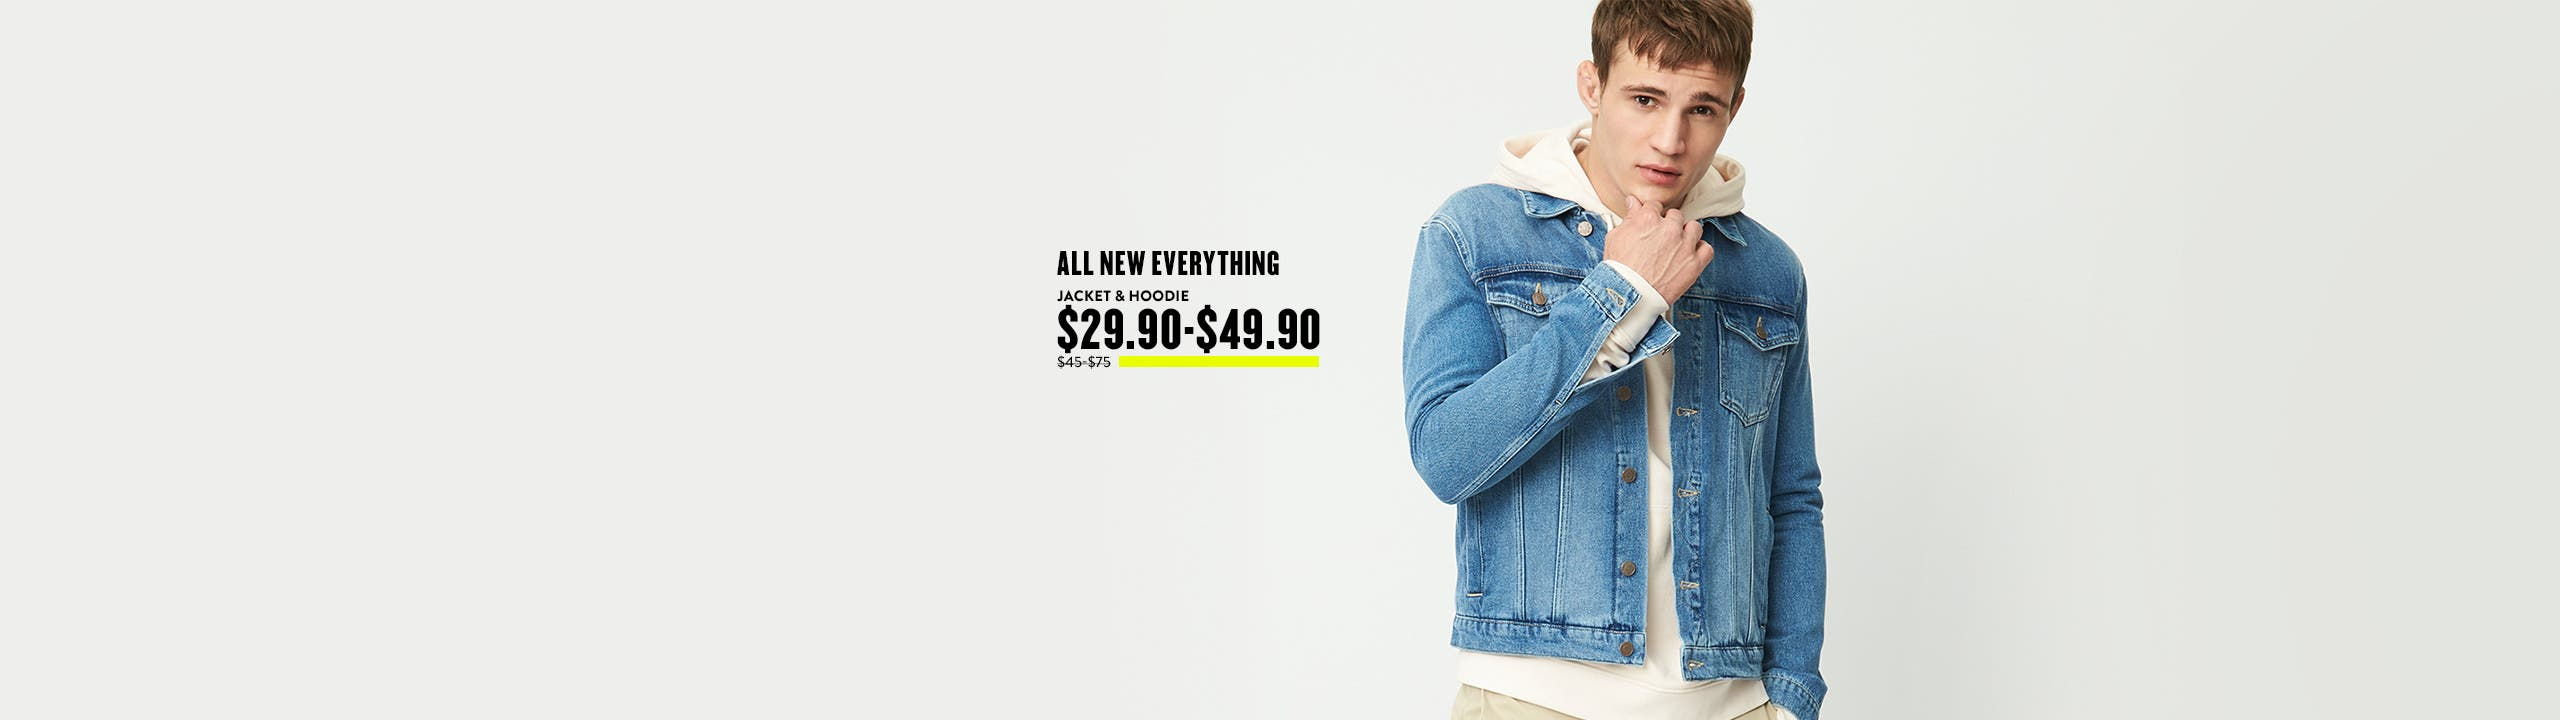 All new everything from Topman.